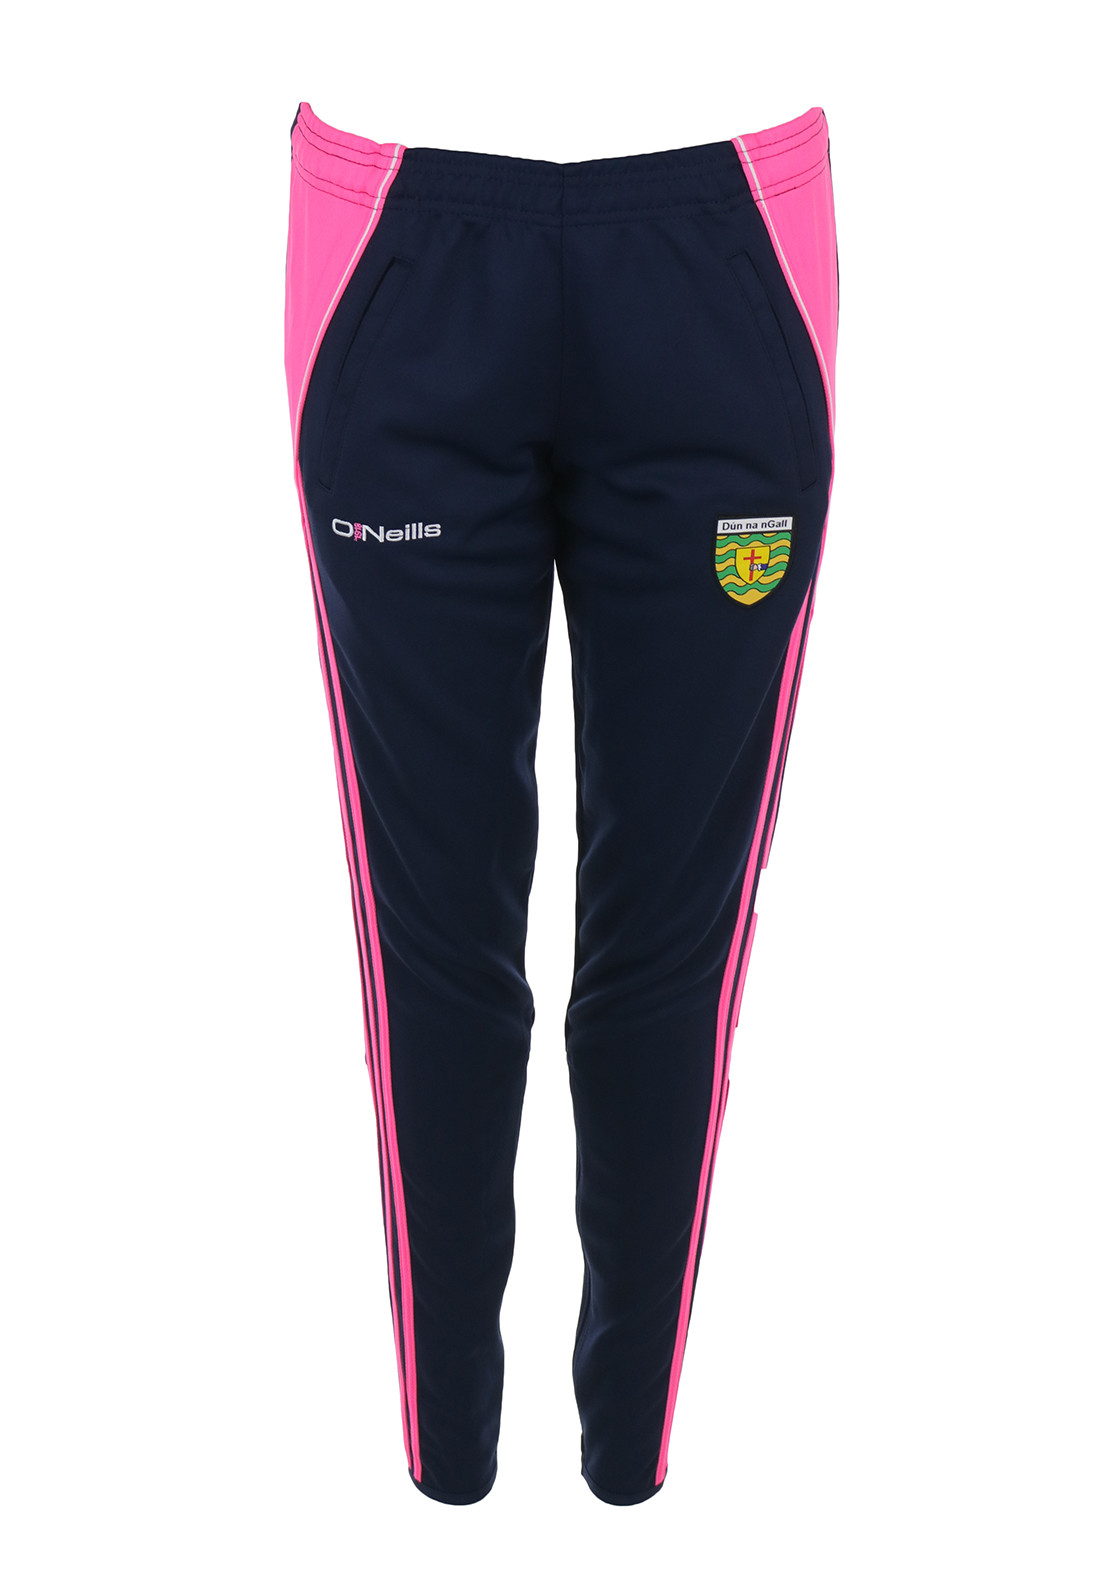 O'Neill's Donegal GAA Girls Conall Striped Skinny Pants, Navy